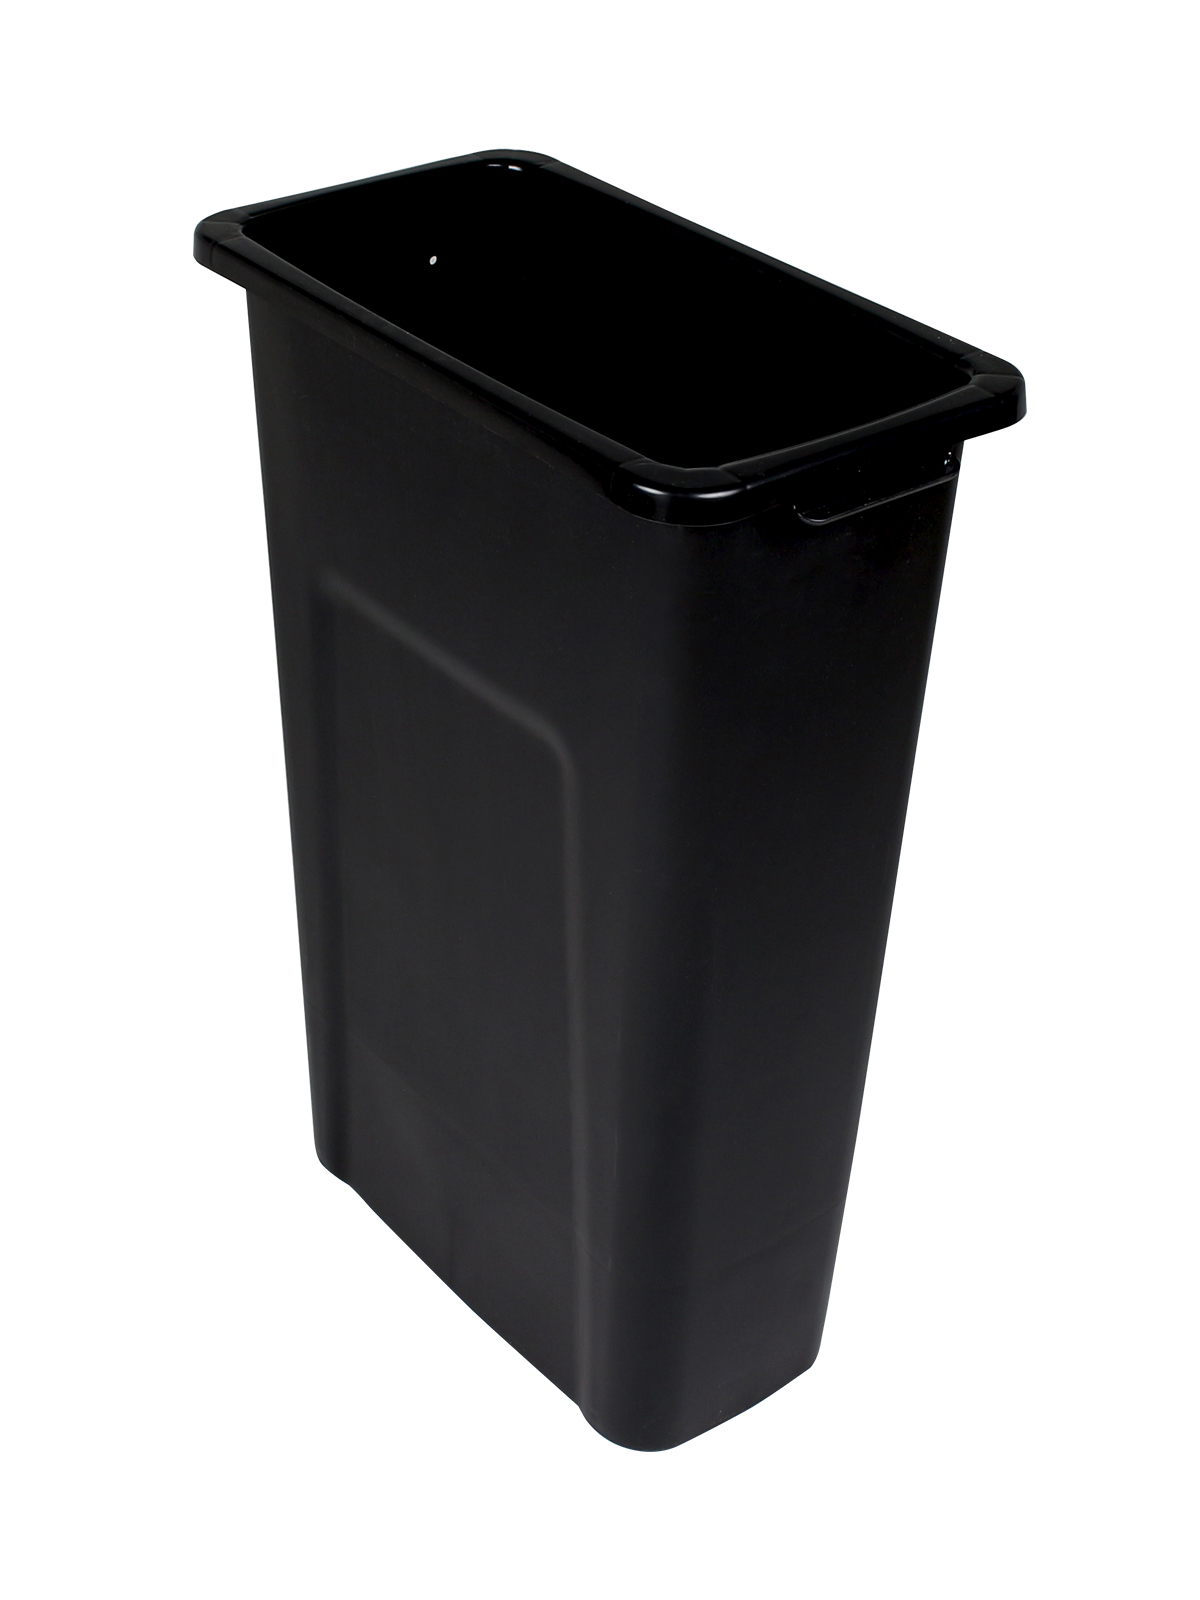 WASTE WATCHER - Single - Body - 30 - Black